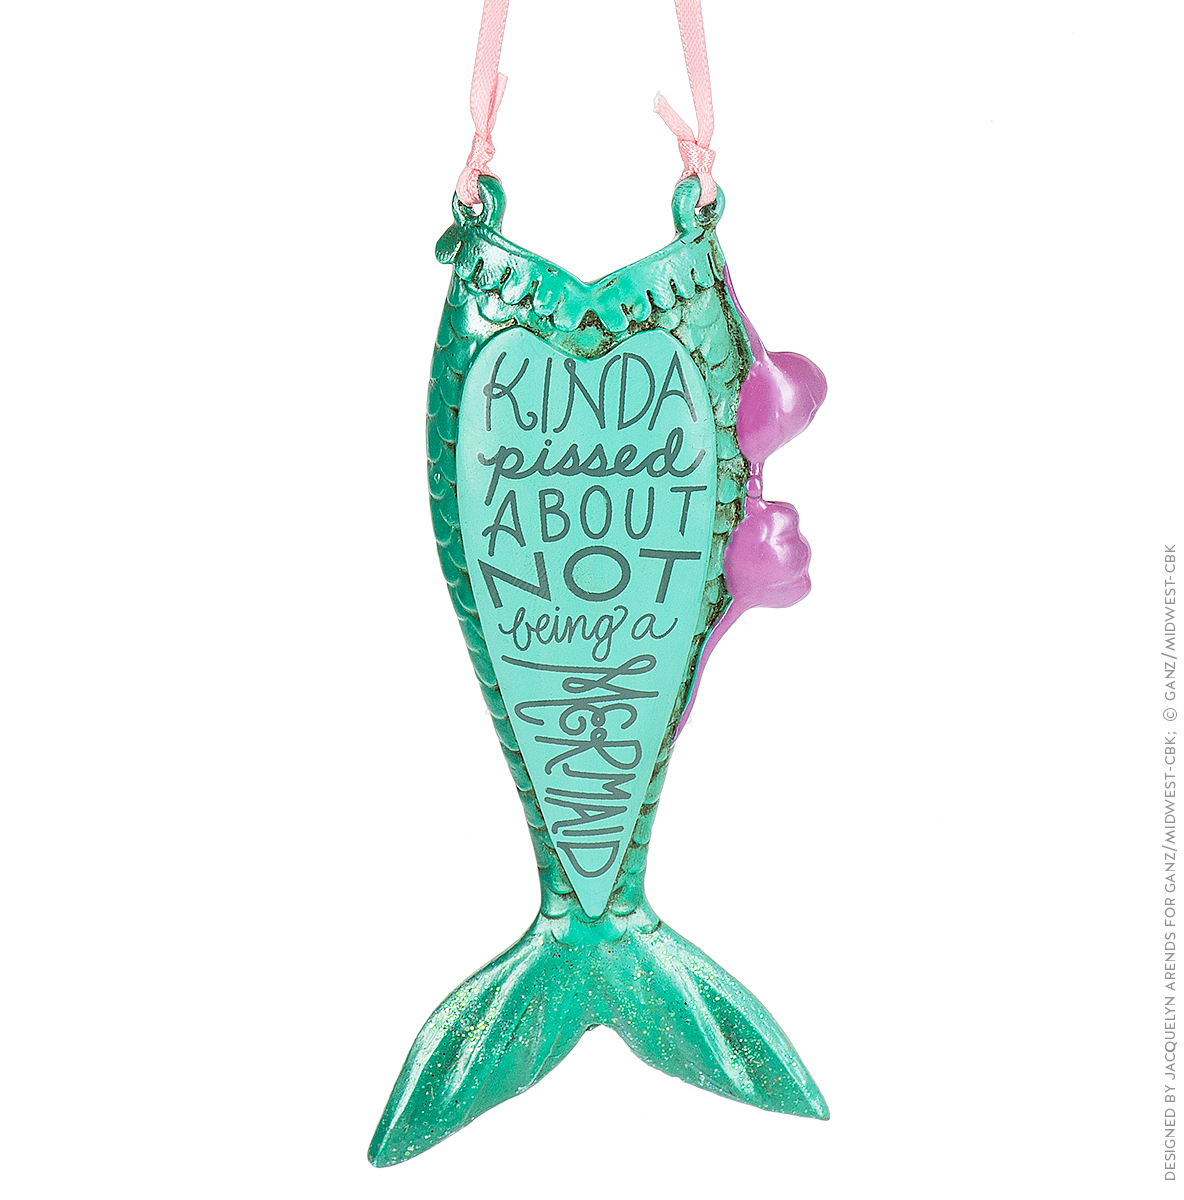 "Specialty Ornaments ""Kinda Pissed About Not Being a Mermaid"" ornament by Jacquelyn Arends; © Ganz/Midwest-CBK 2019"